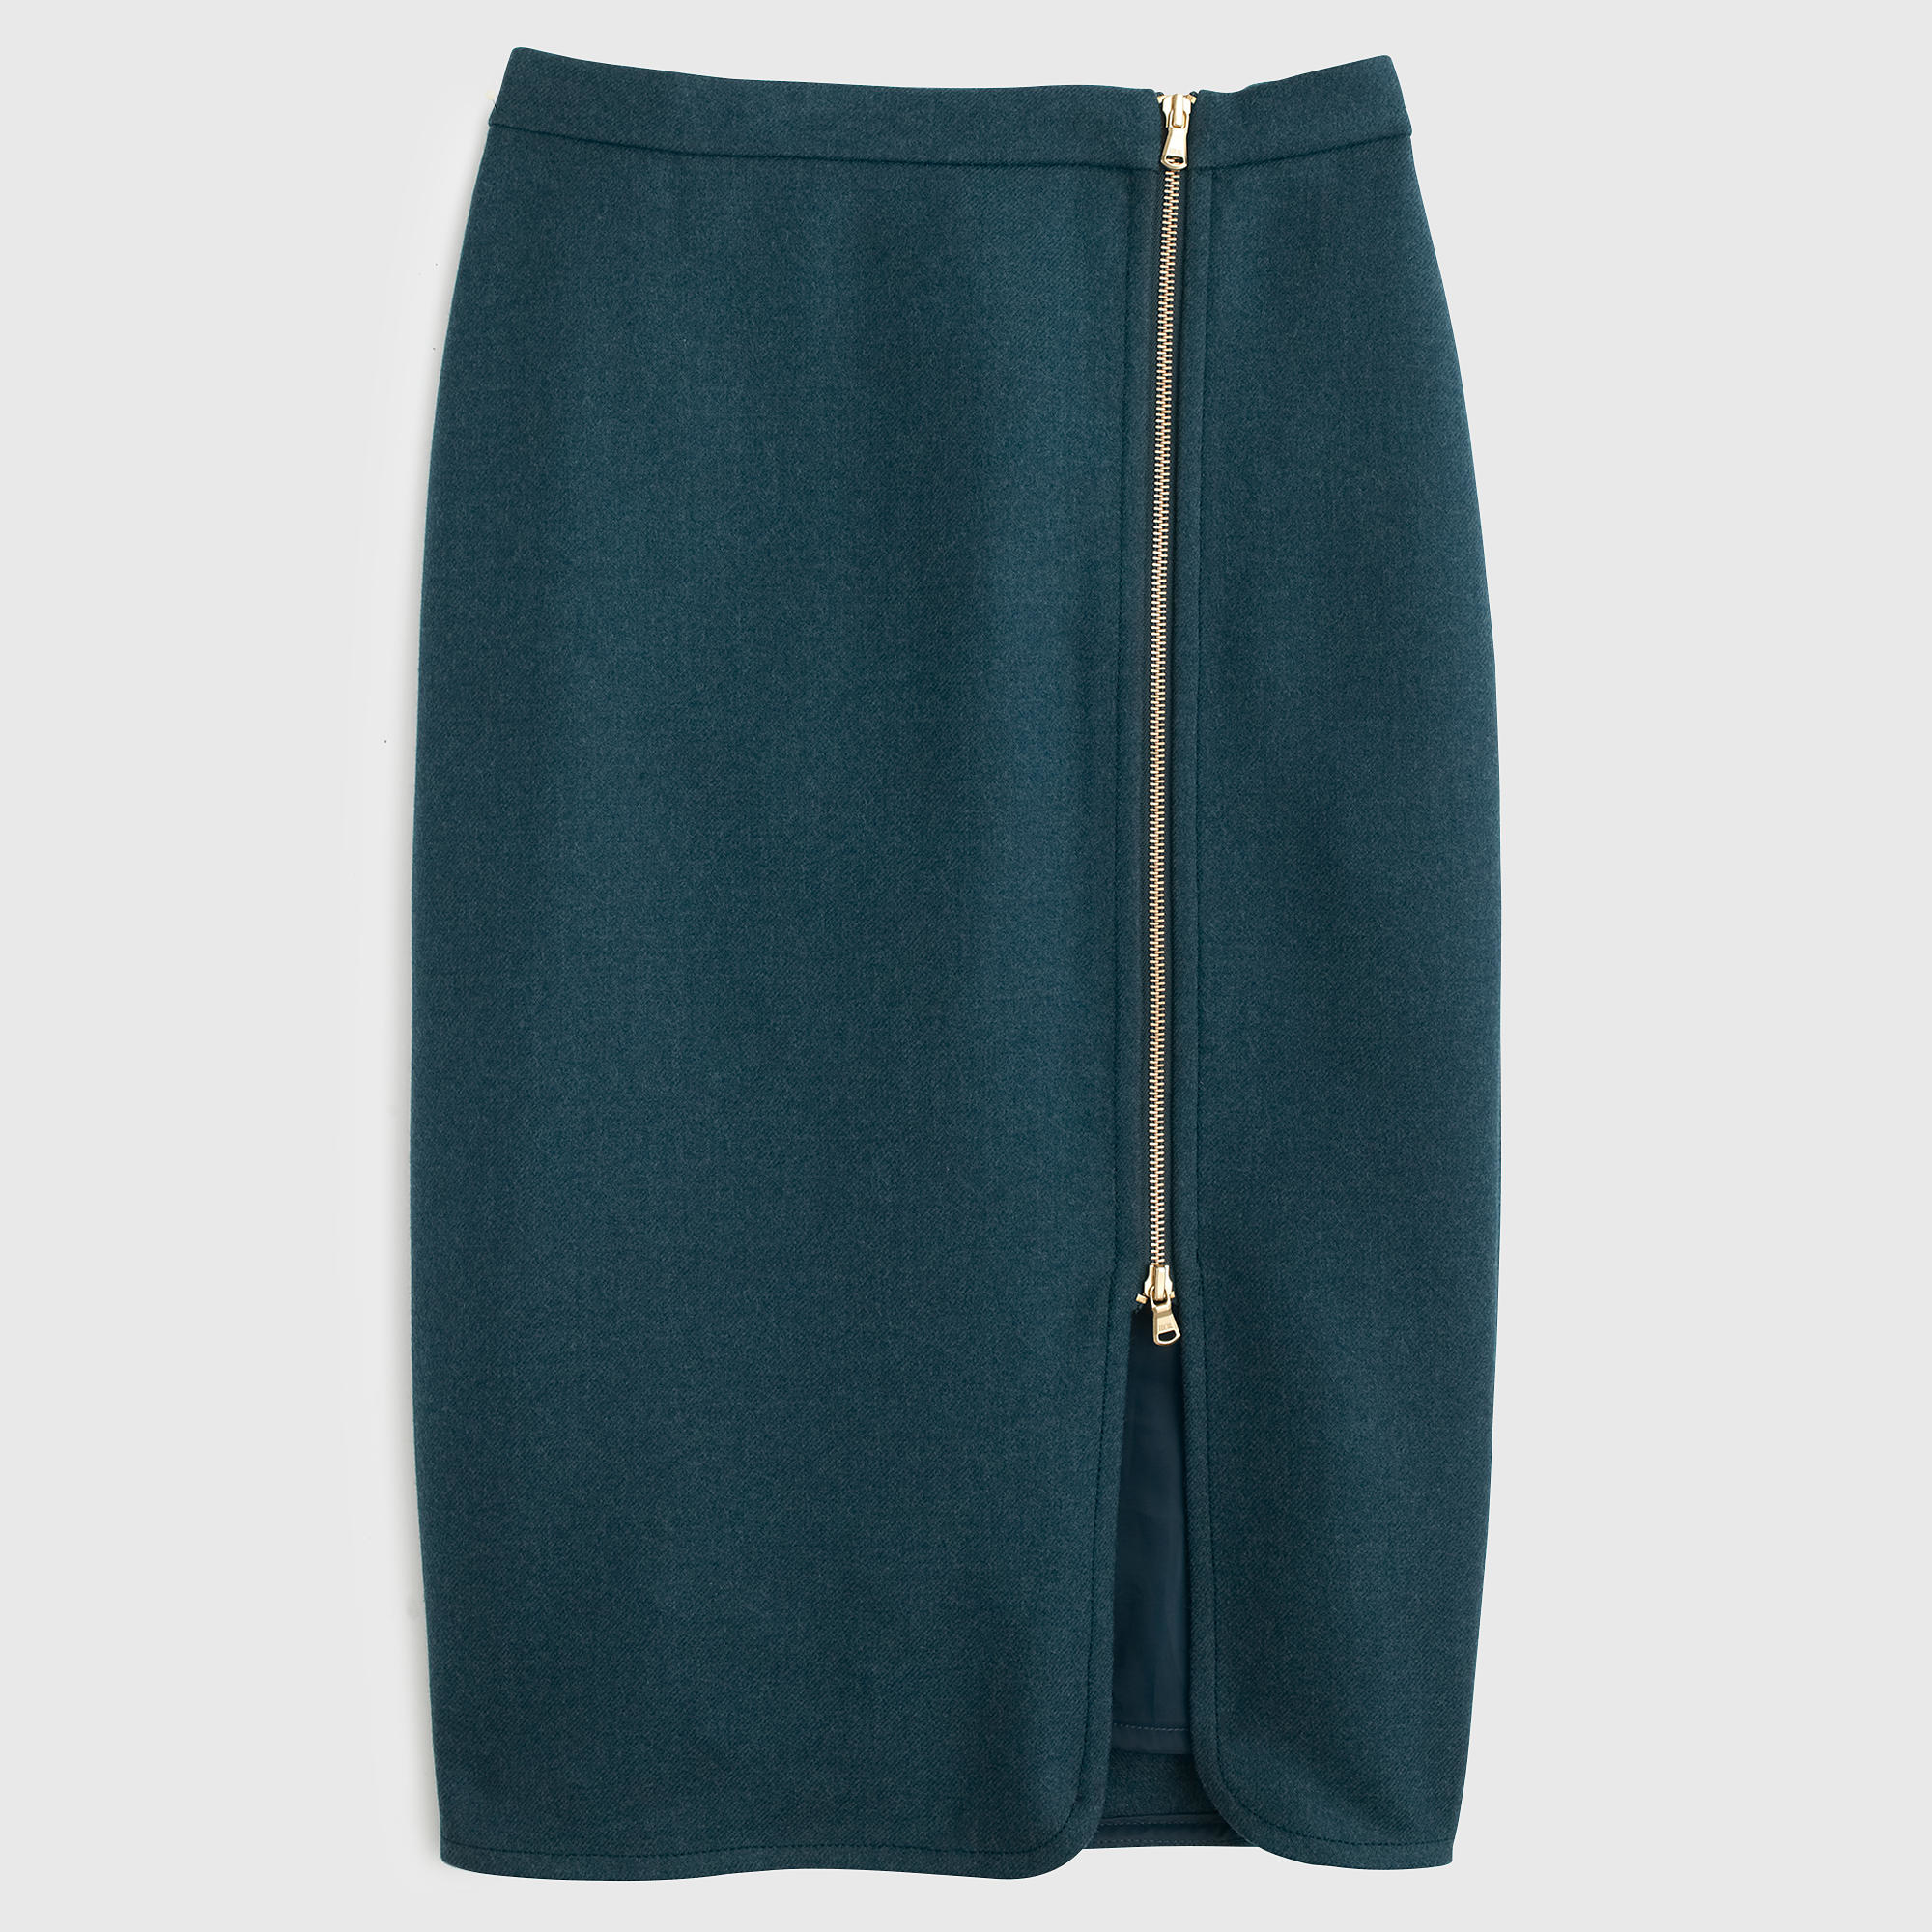 j crew wool zip pencil skirt in teal forest green